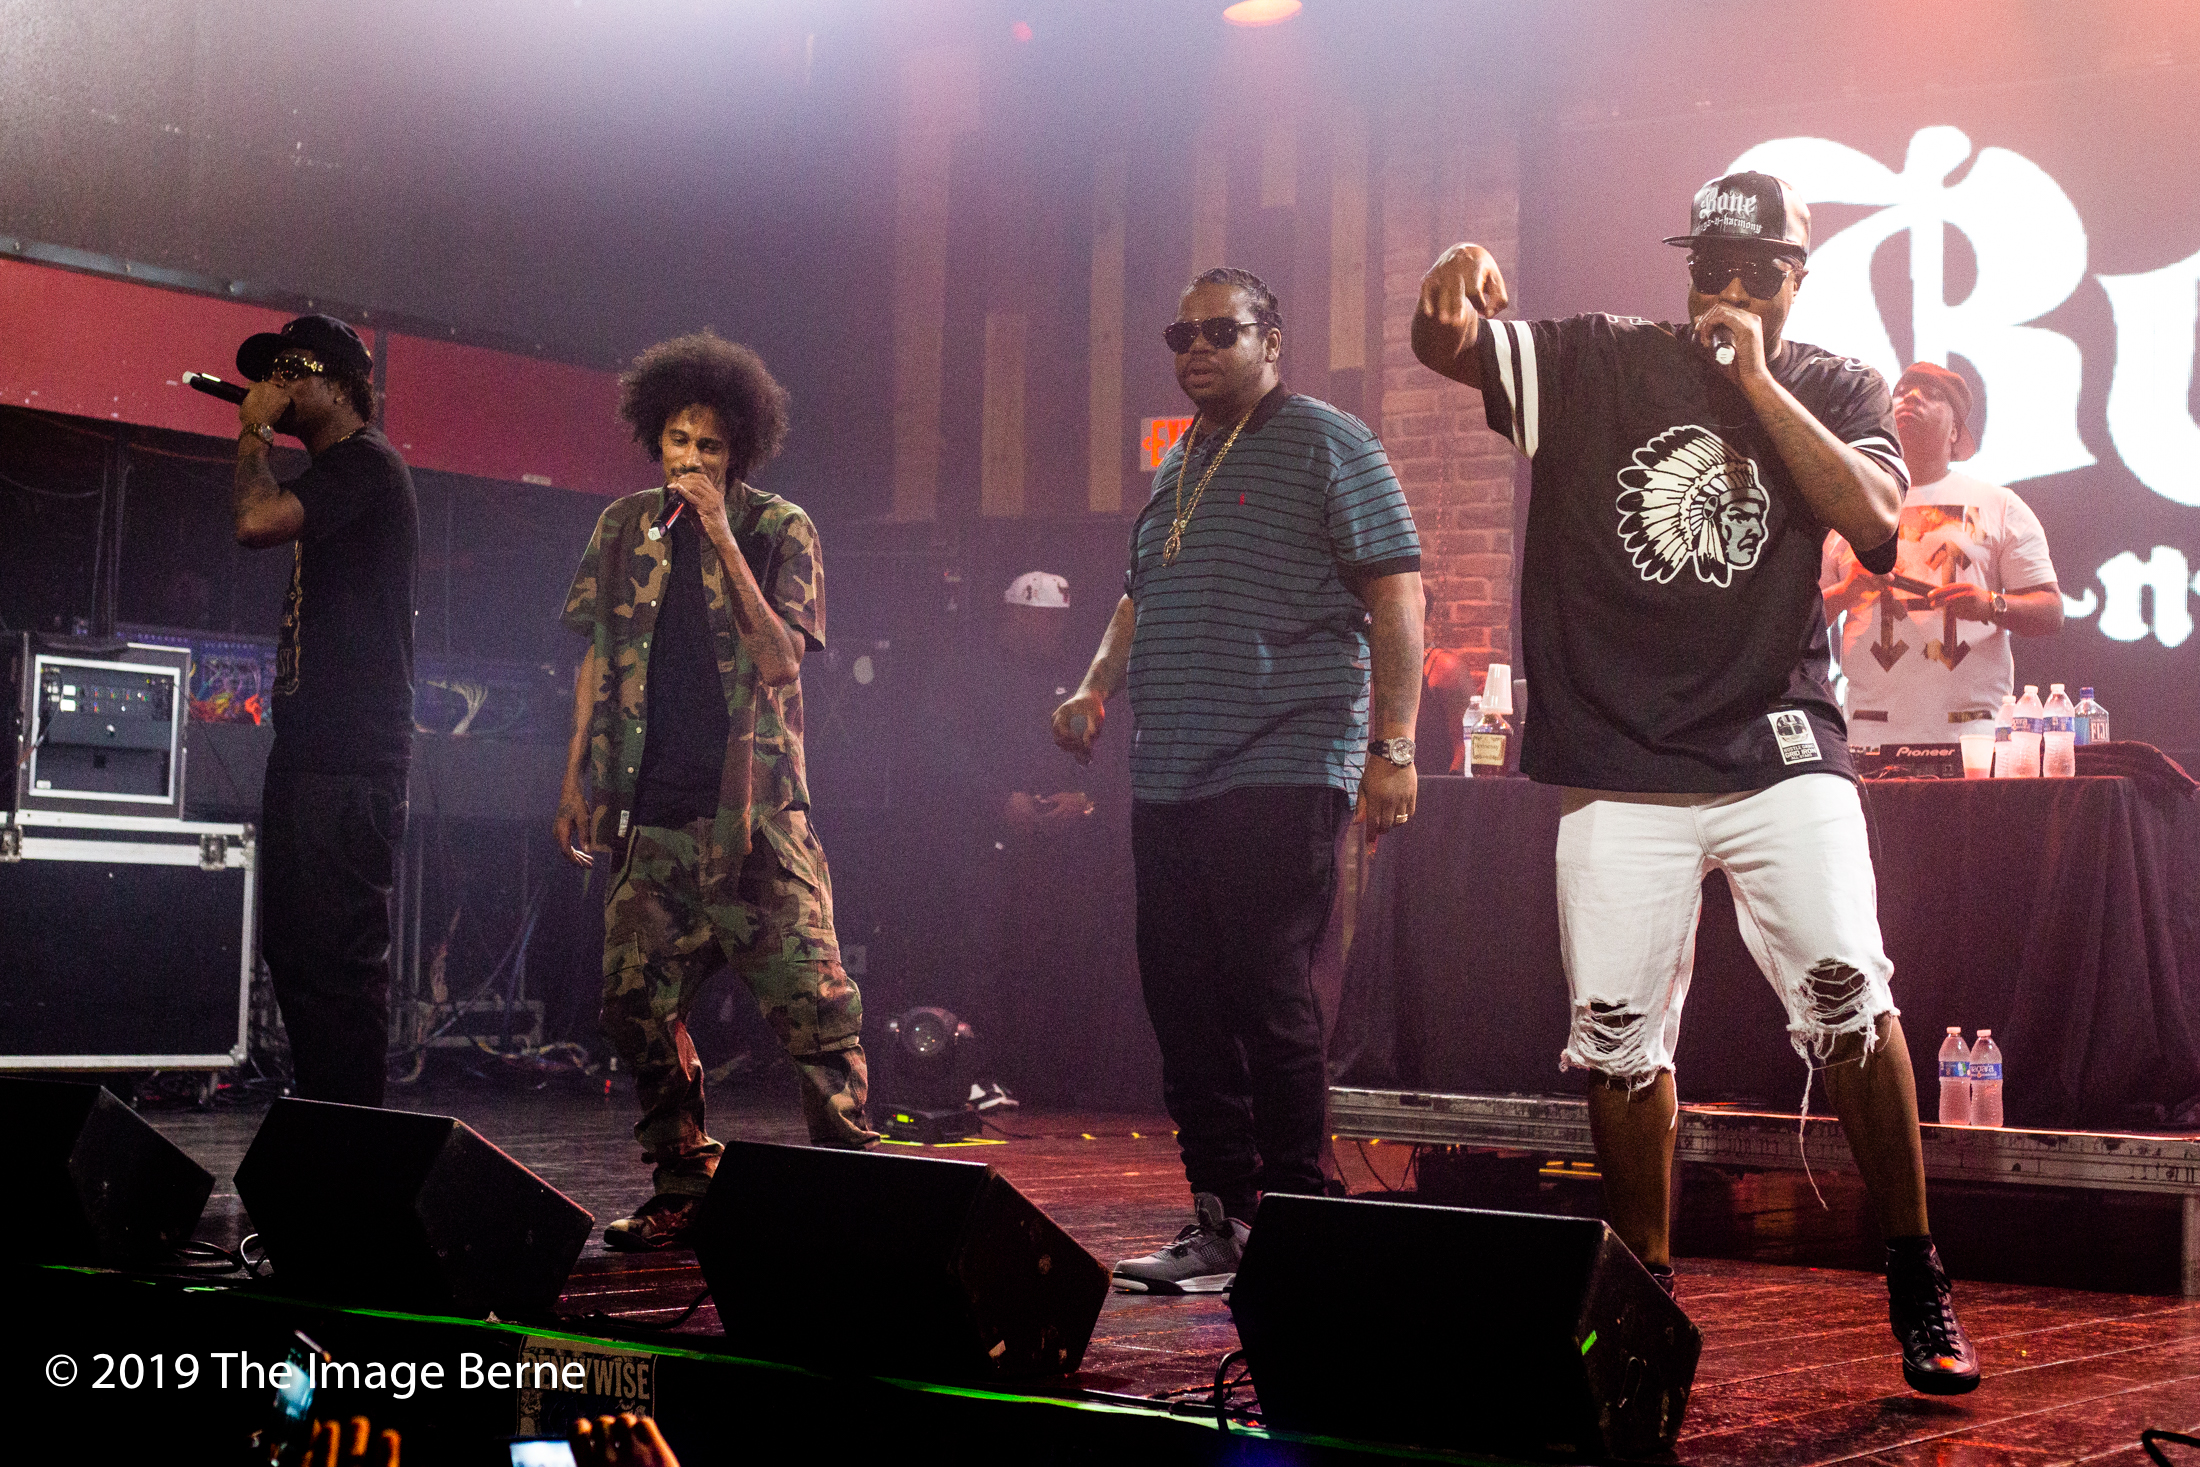 Krayzie Bone, Wish Bone, Flesh-N-Bone, Layzie Bone, and Bizzy Bone-075.jpg